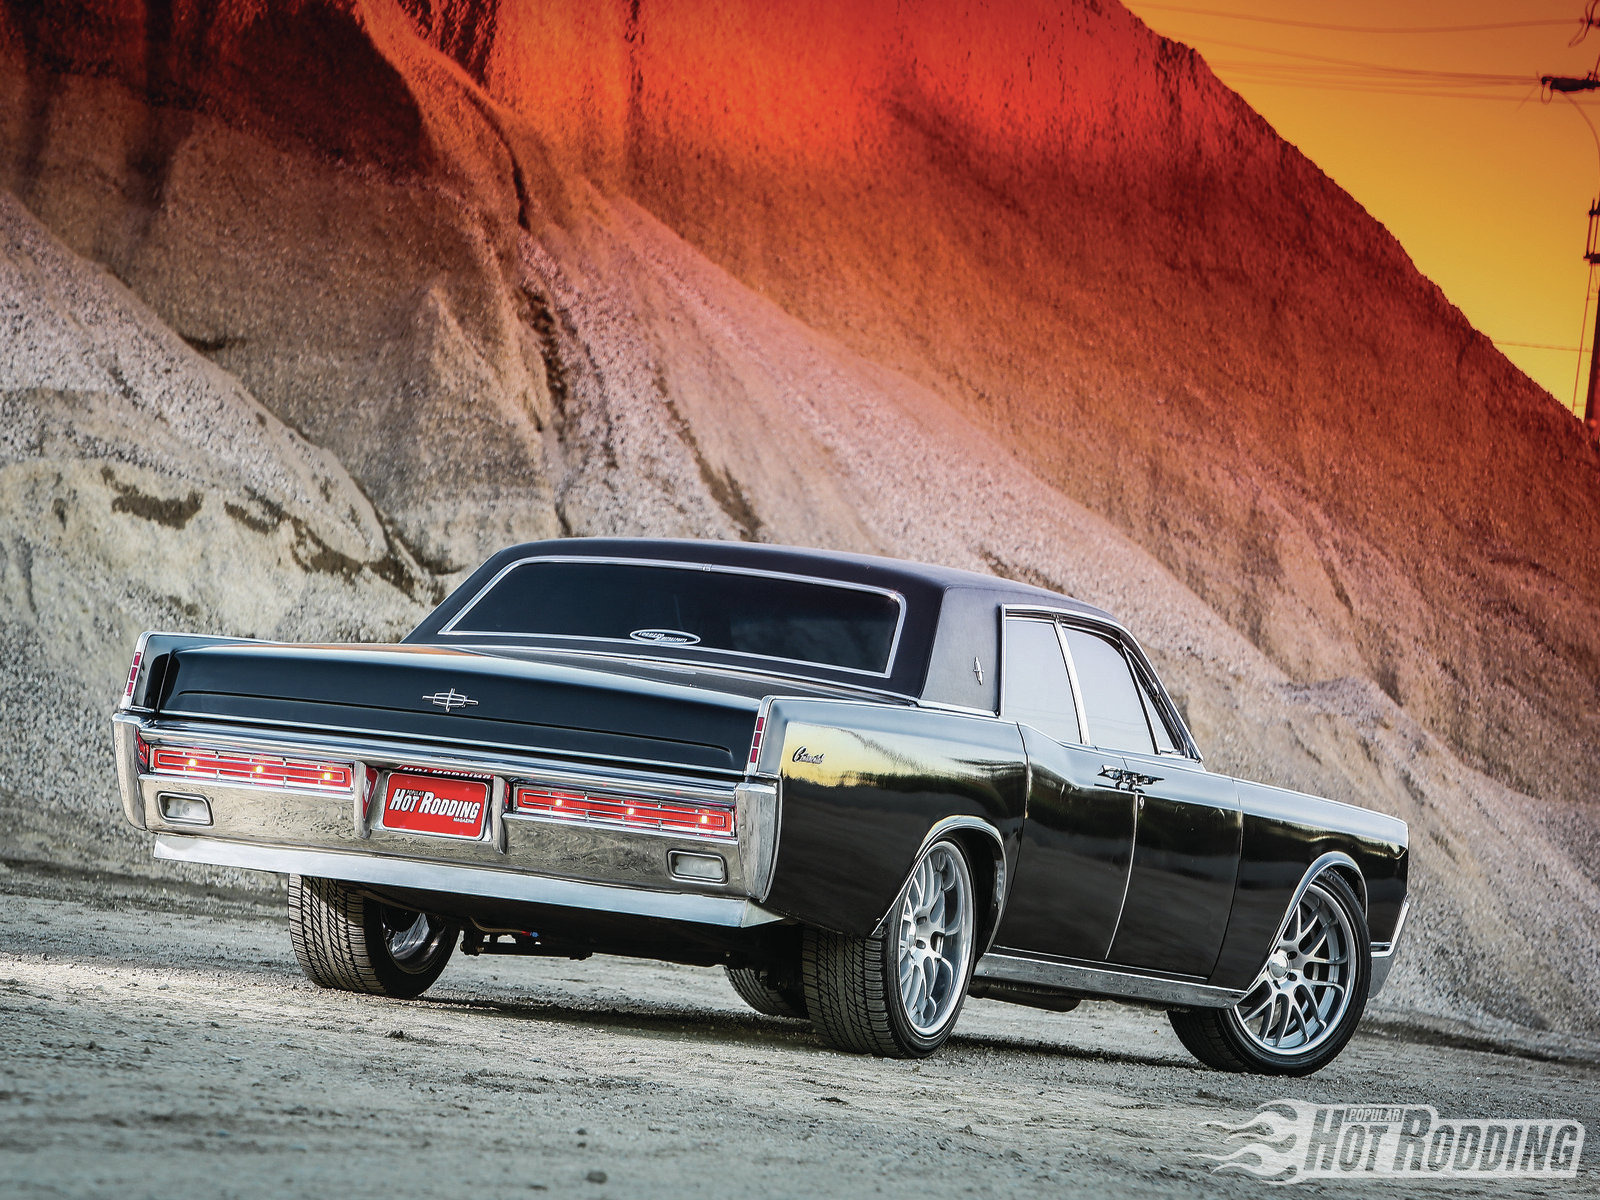 Old Classic El Camino Muscle Cars Wallpaper 1967 Lincoln Continental Hot Rod Network